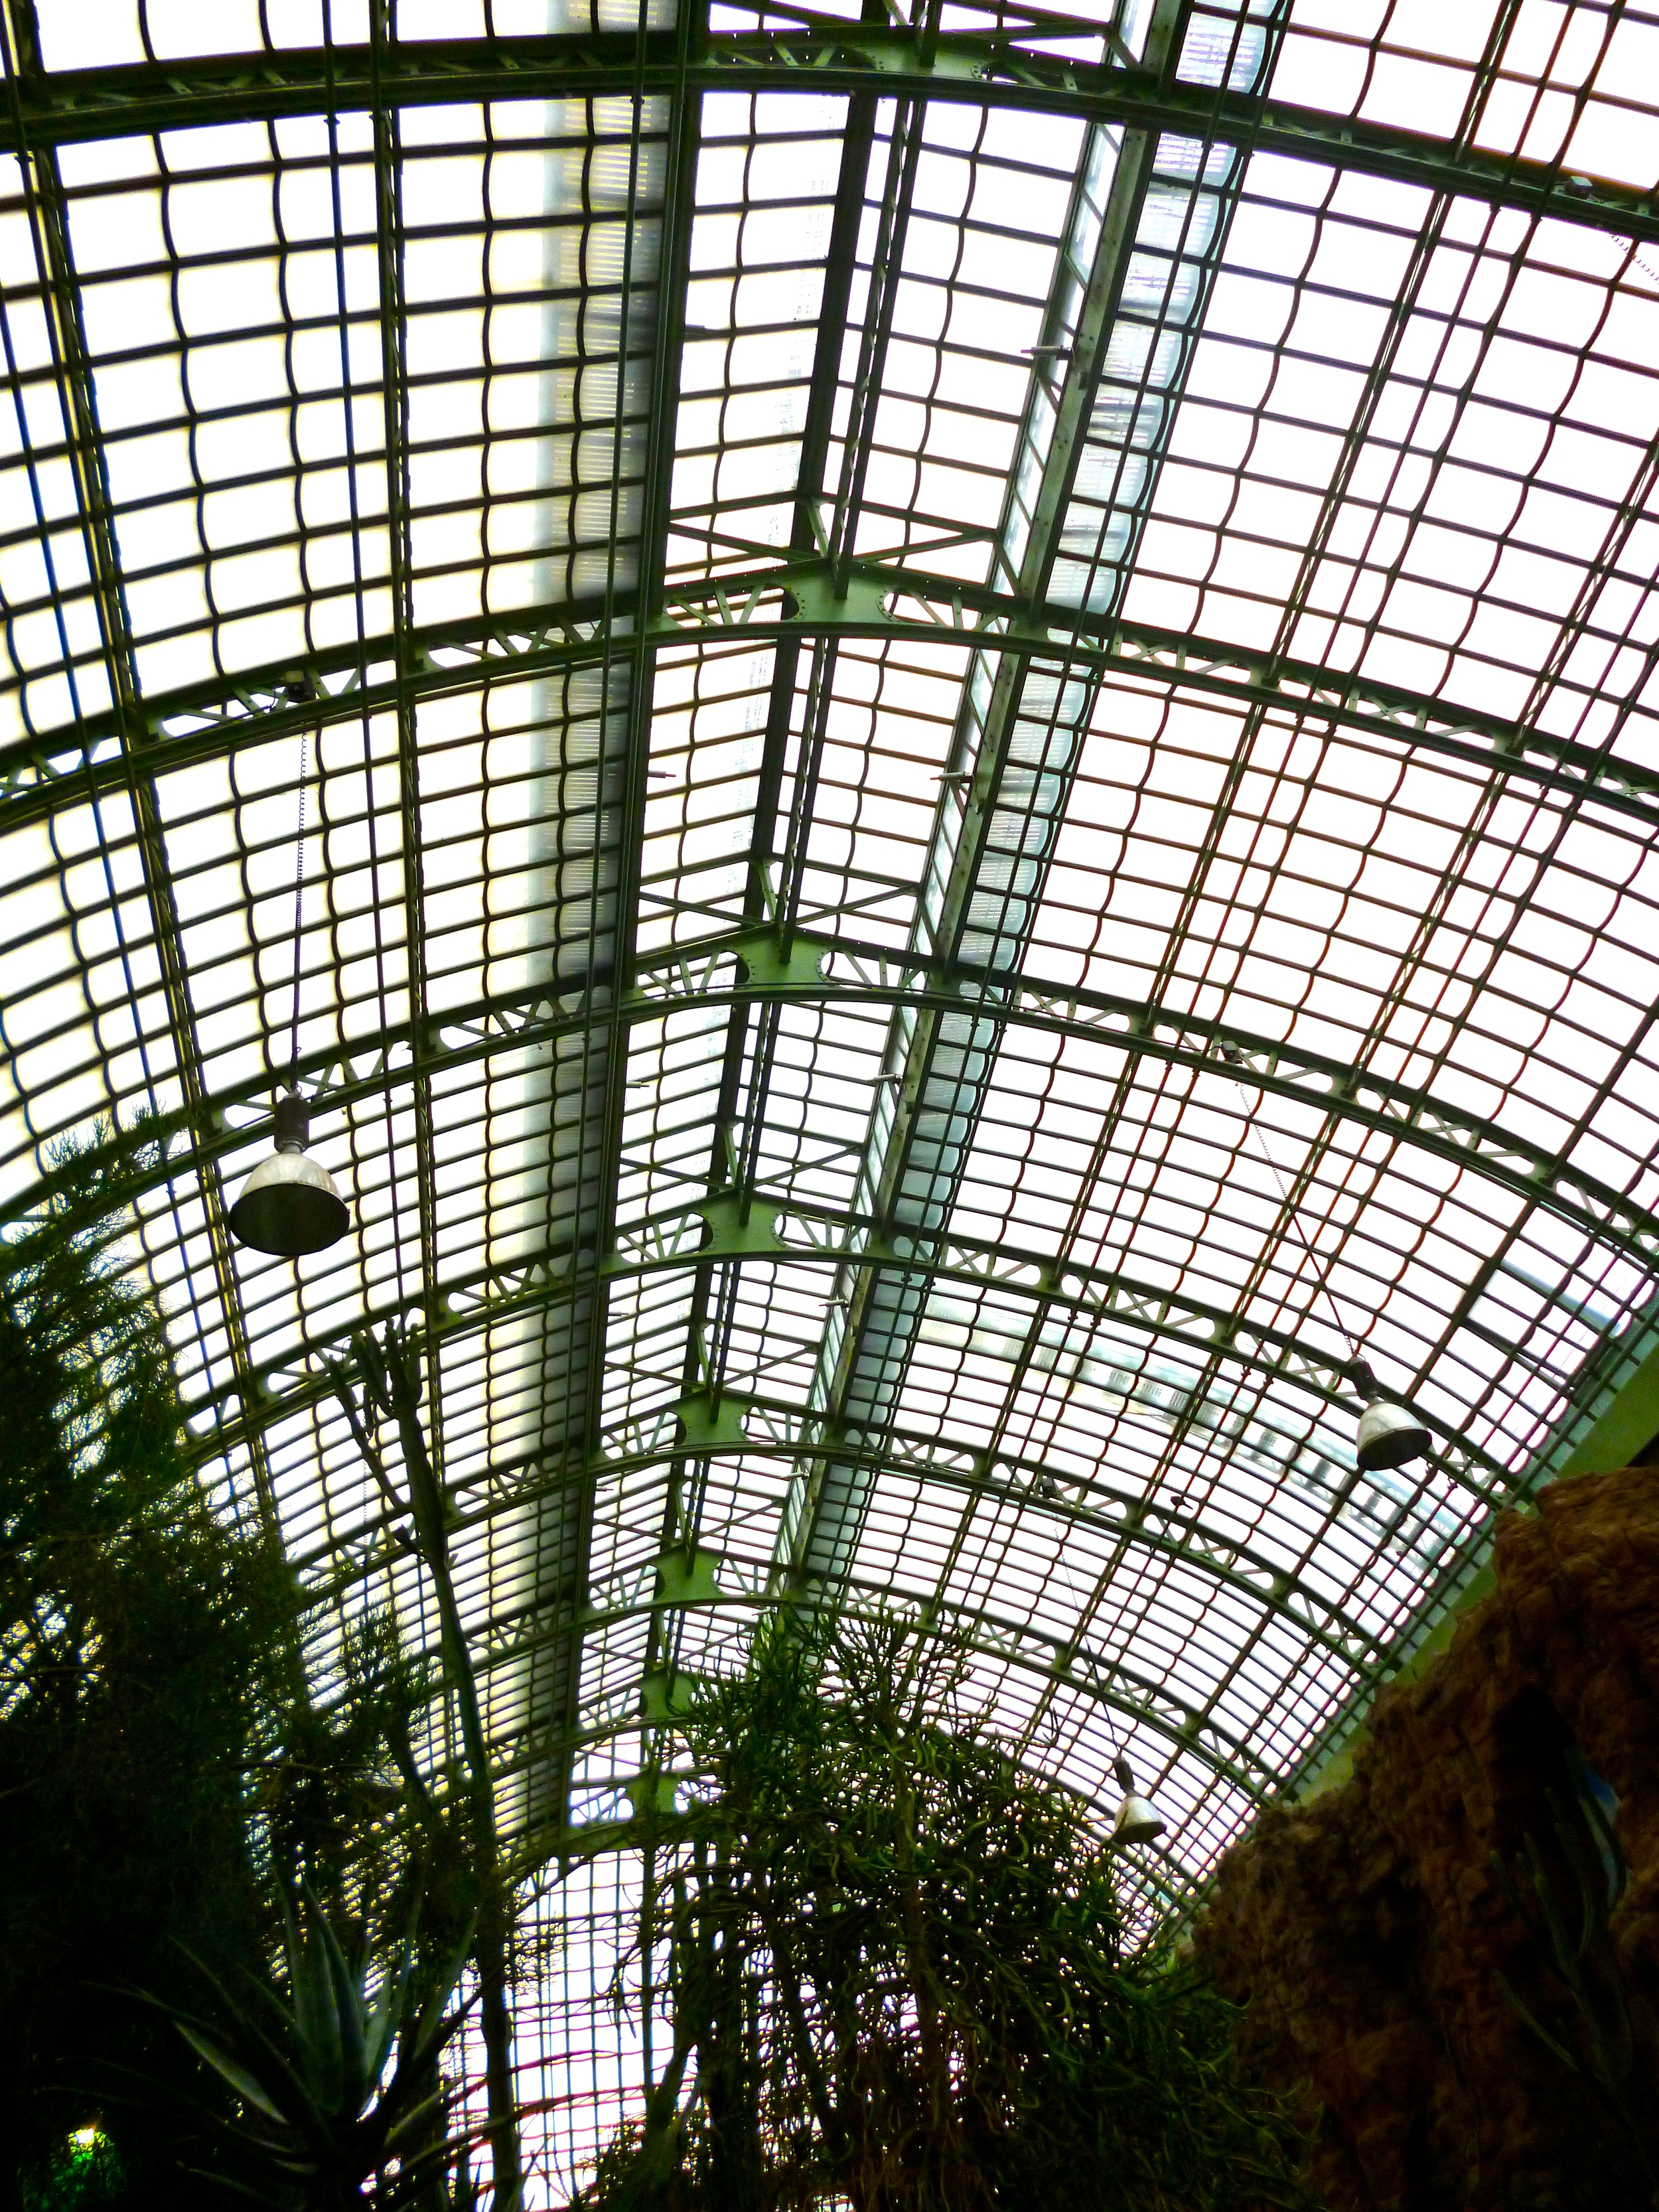 It's still used as a greenhouse. Though the plants aren't as inspired as the architecture.